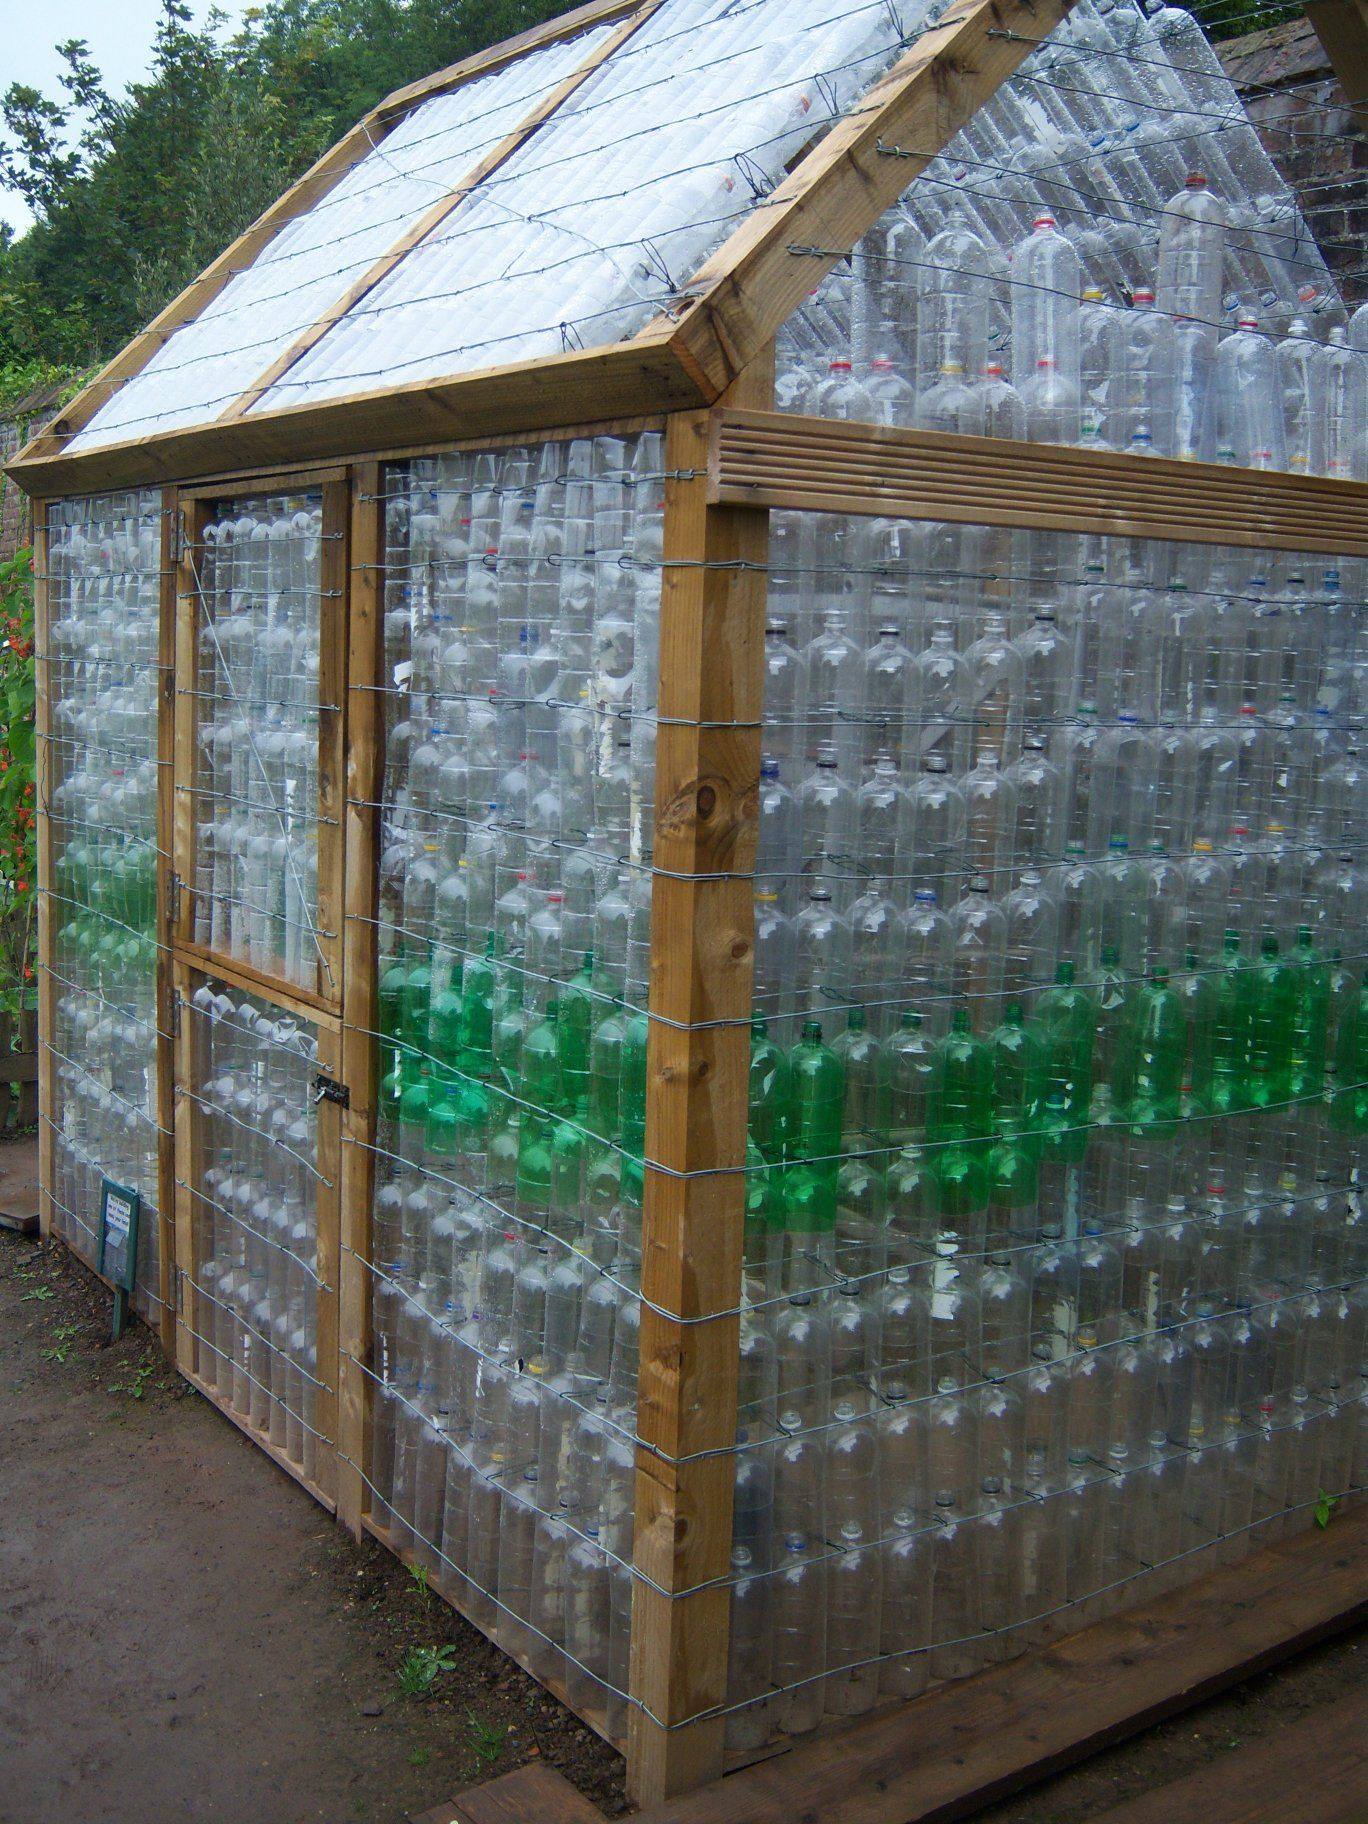 How To Build A Greenhouse From Plastic Bottles